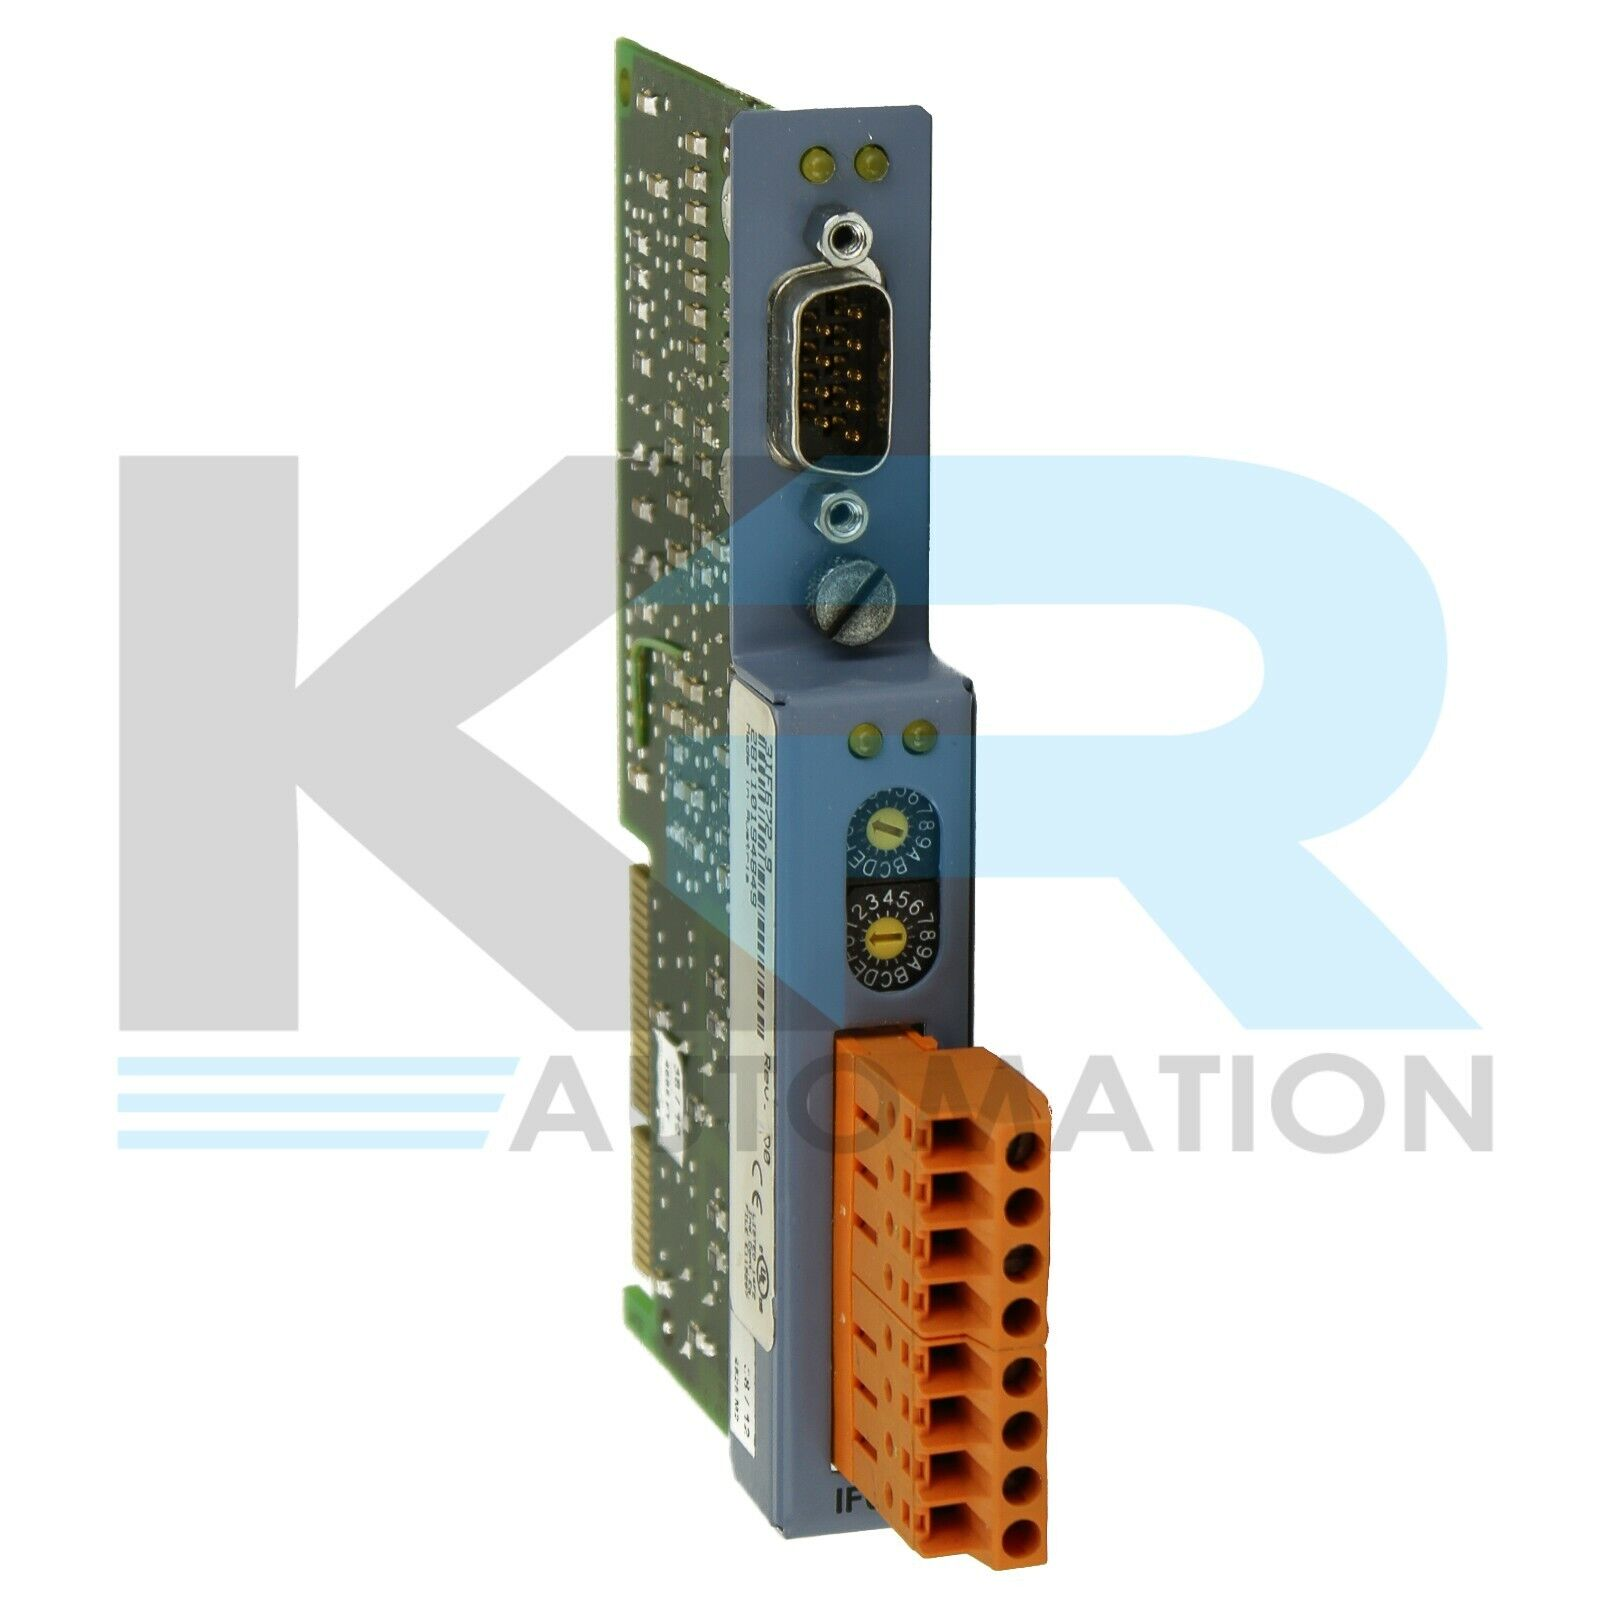 B&R 3IF672.9 RS-232/CAN Interface Module